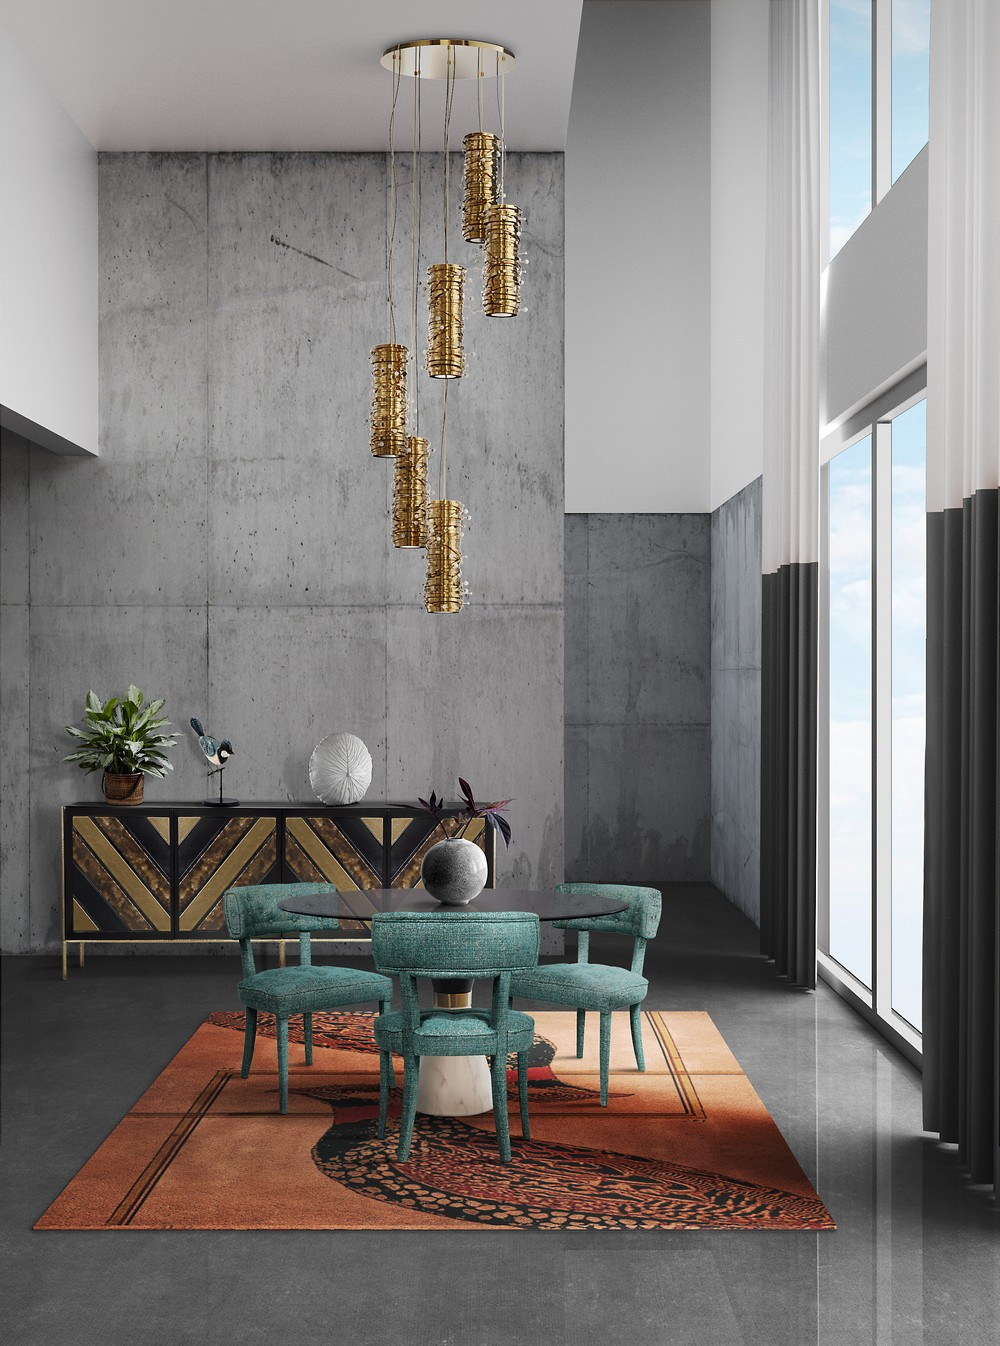 Interior Design Trends To Refine Your Dining Room in 2020 interior design trends Interior Design Trends To Refine Your Dining Room in 2020 ecledctic 2